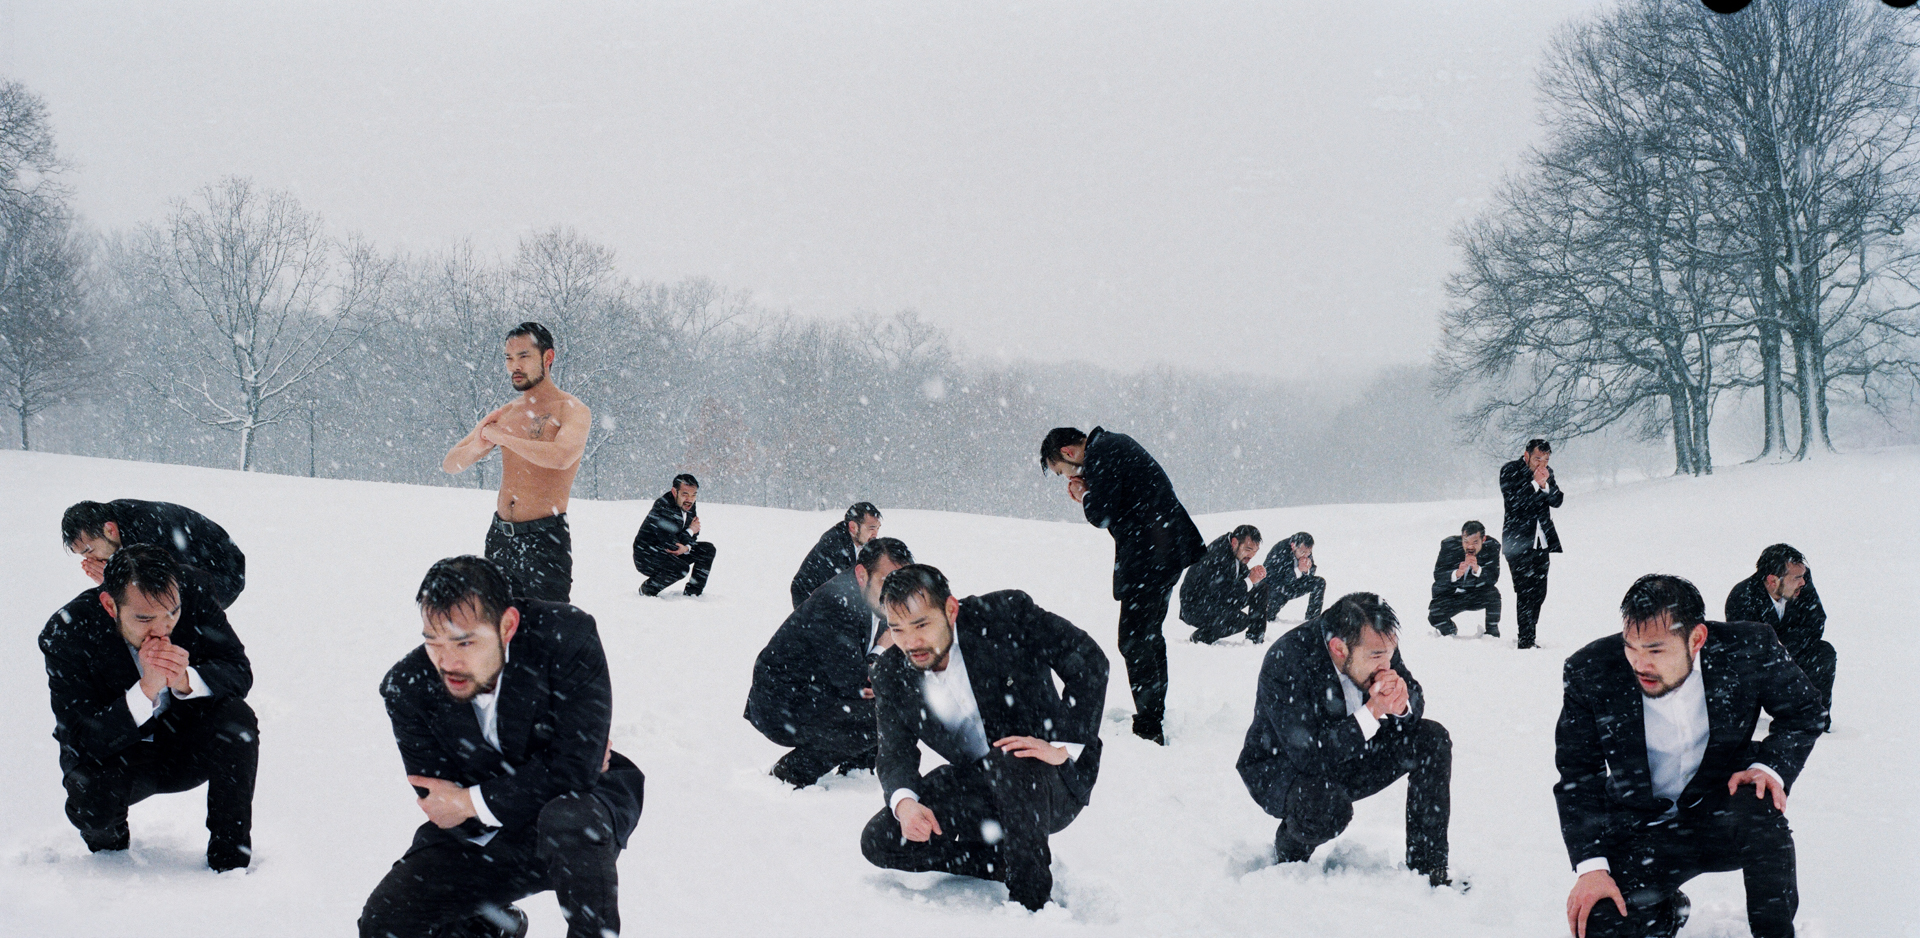 Feeling Numb - A shirtless man standing in a snow storm surrounded by a group of men in black freezing their asses off.